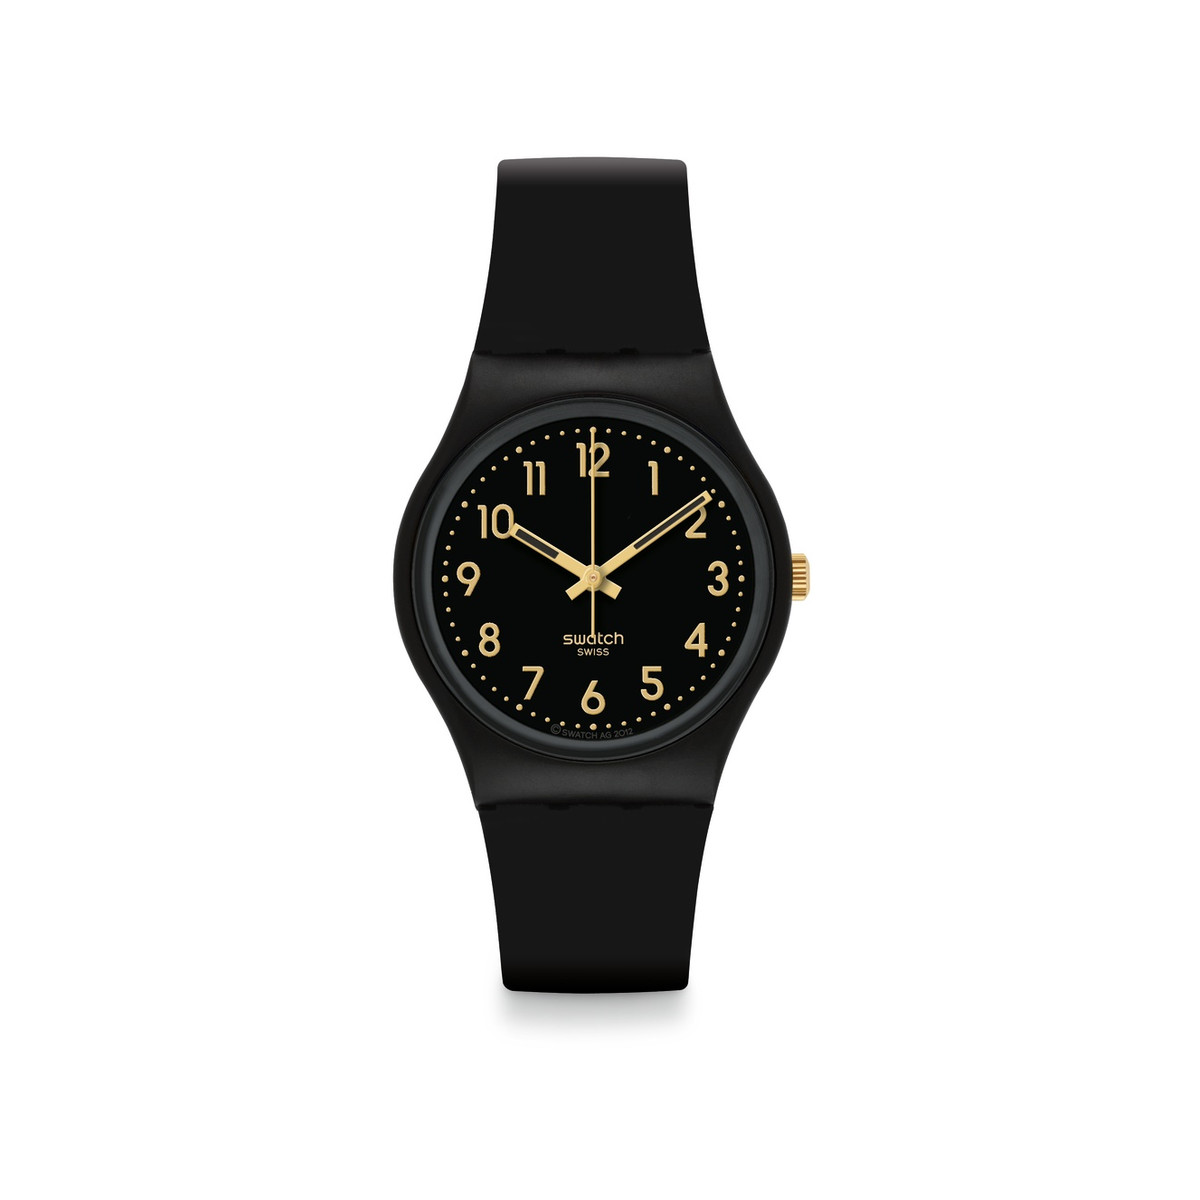 Montre Swatch mixte noir